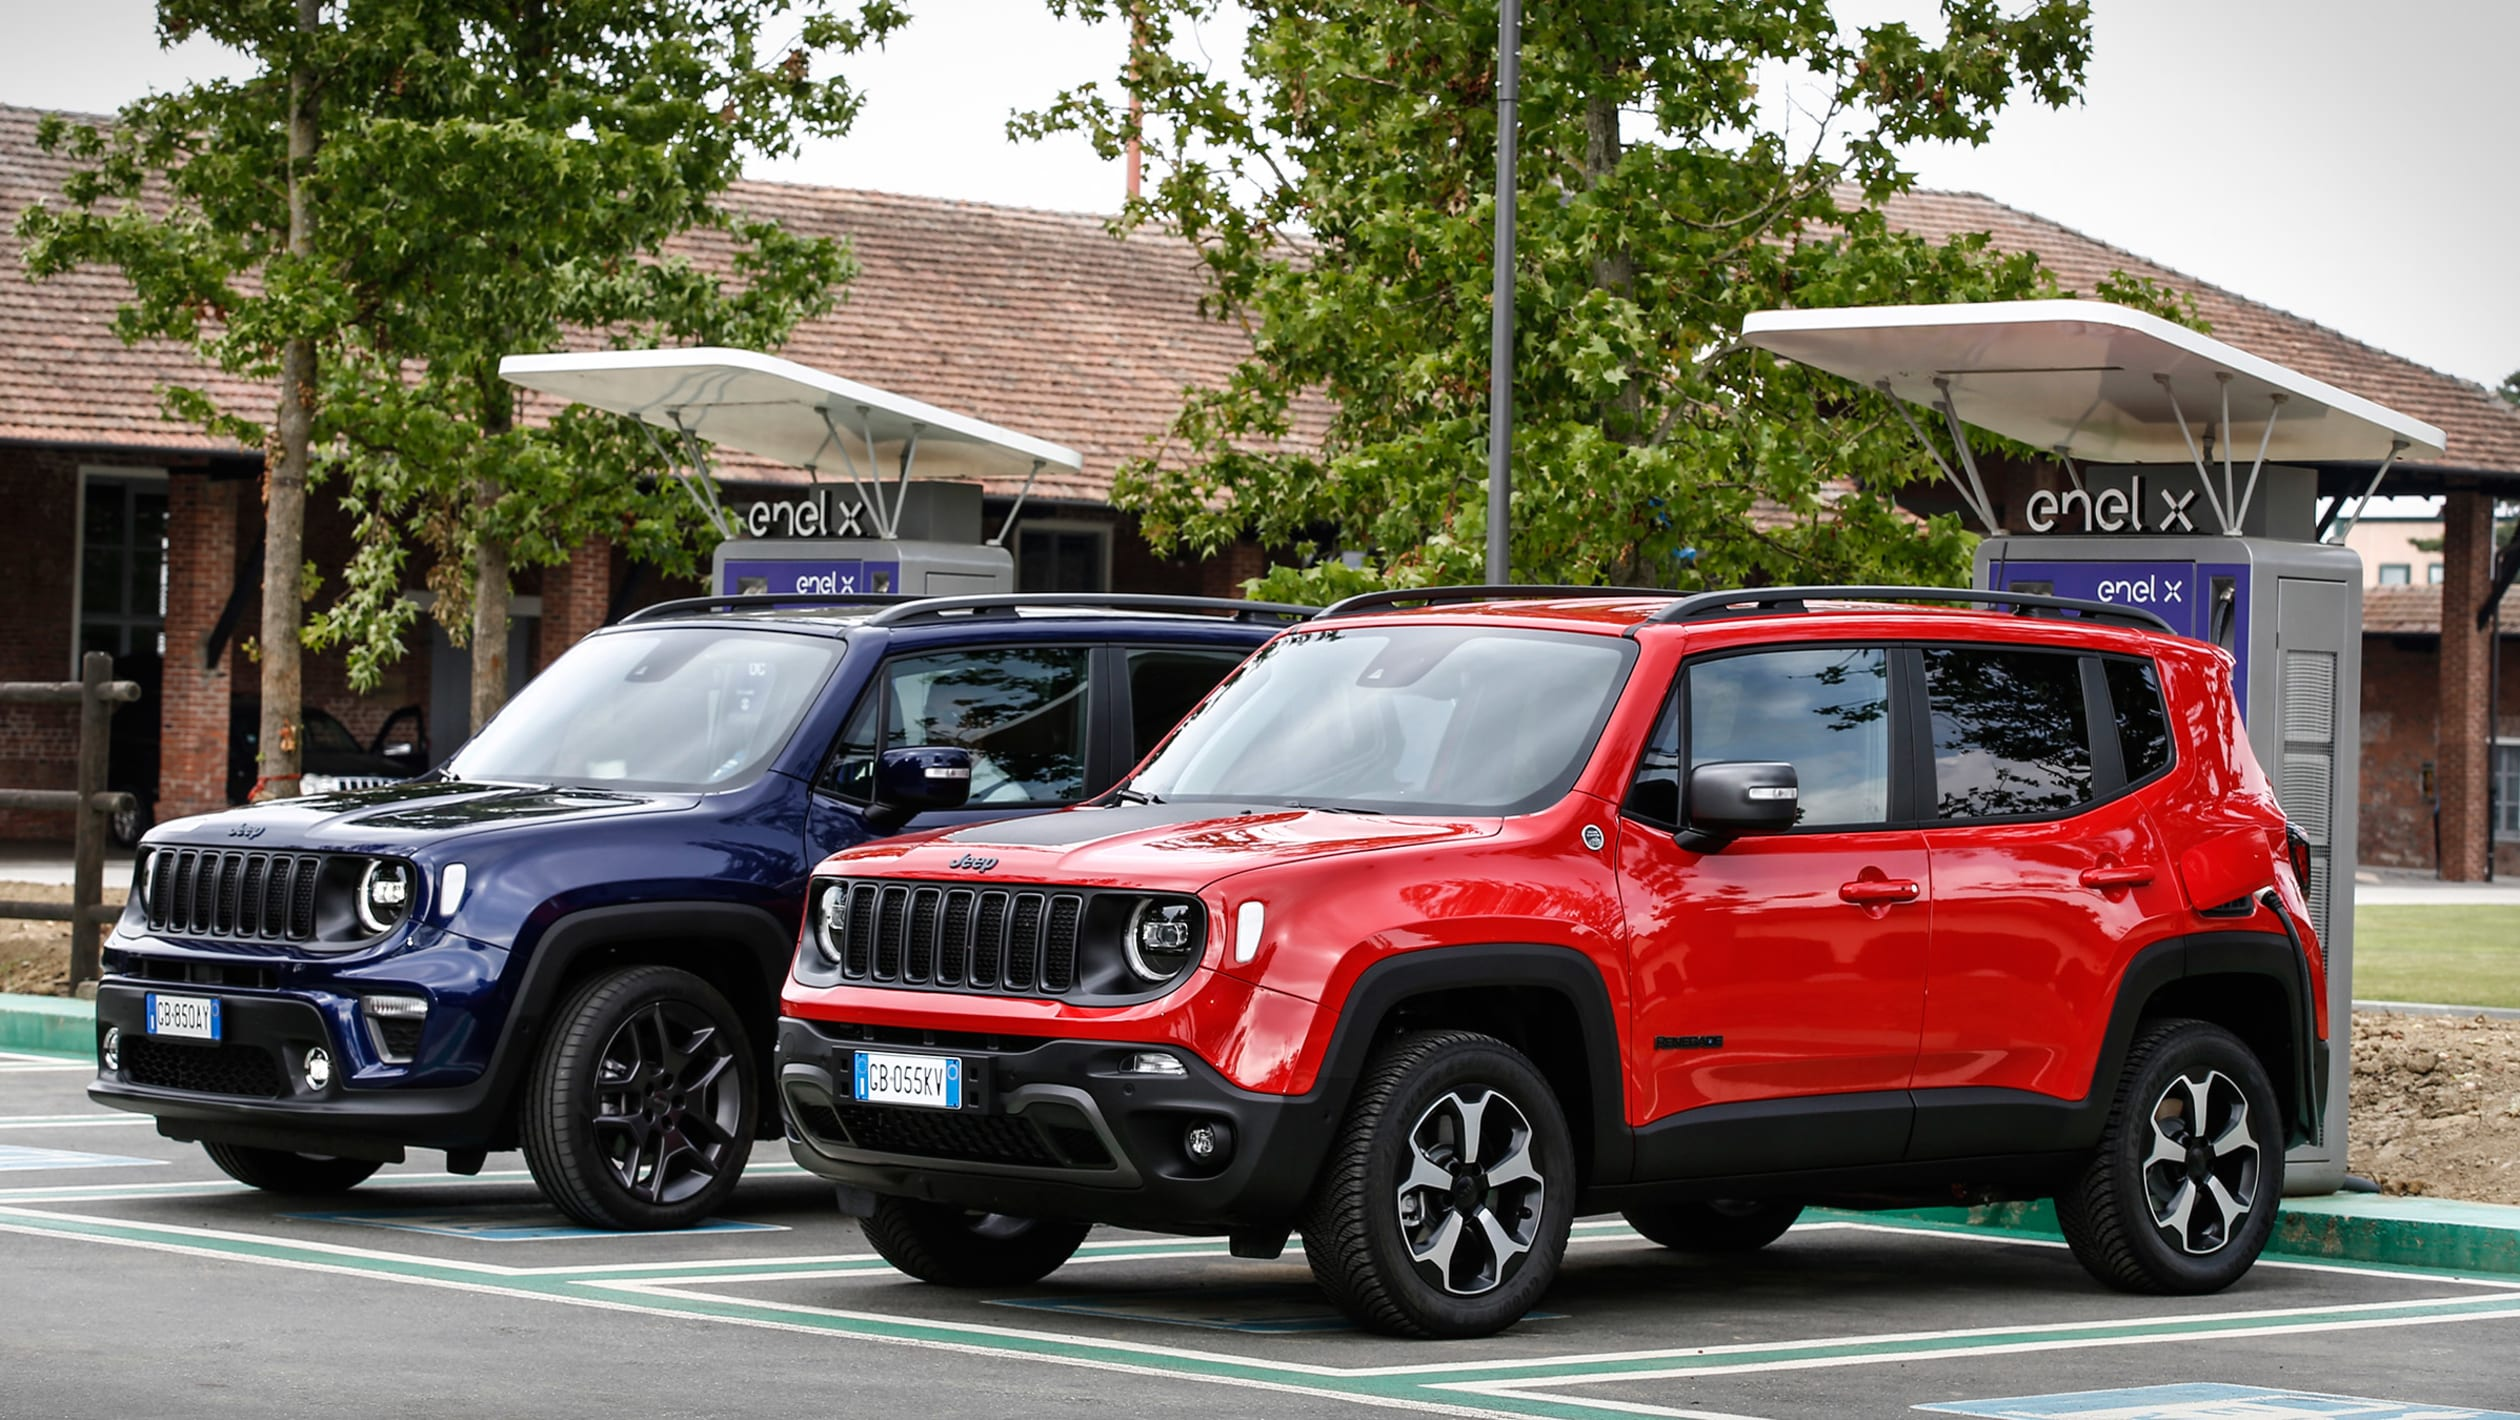 2014 - [Jeep] Renegade - Page 15 Jeep%20Renegade%204xe%20and%20Jeep%20Compass%204xe%202020-5